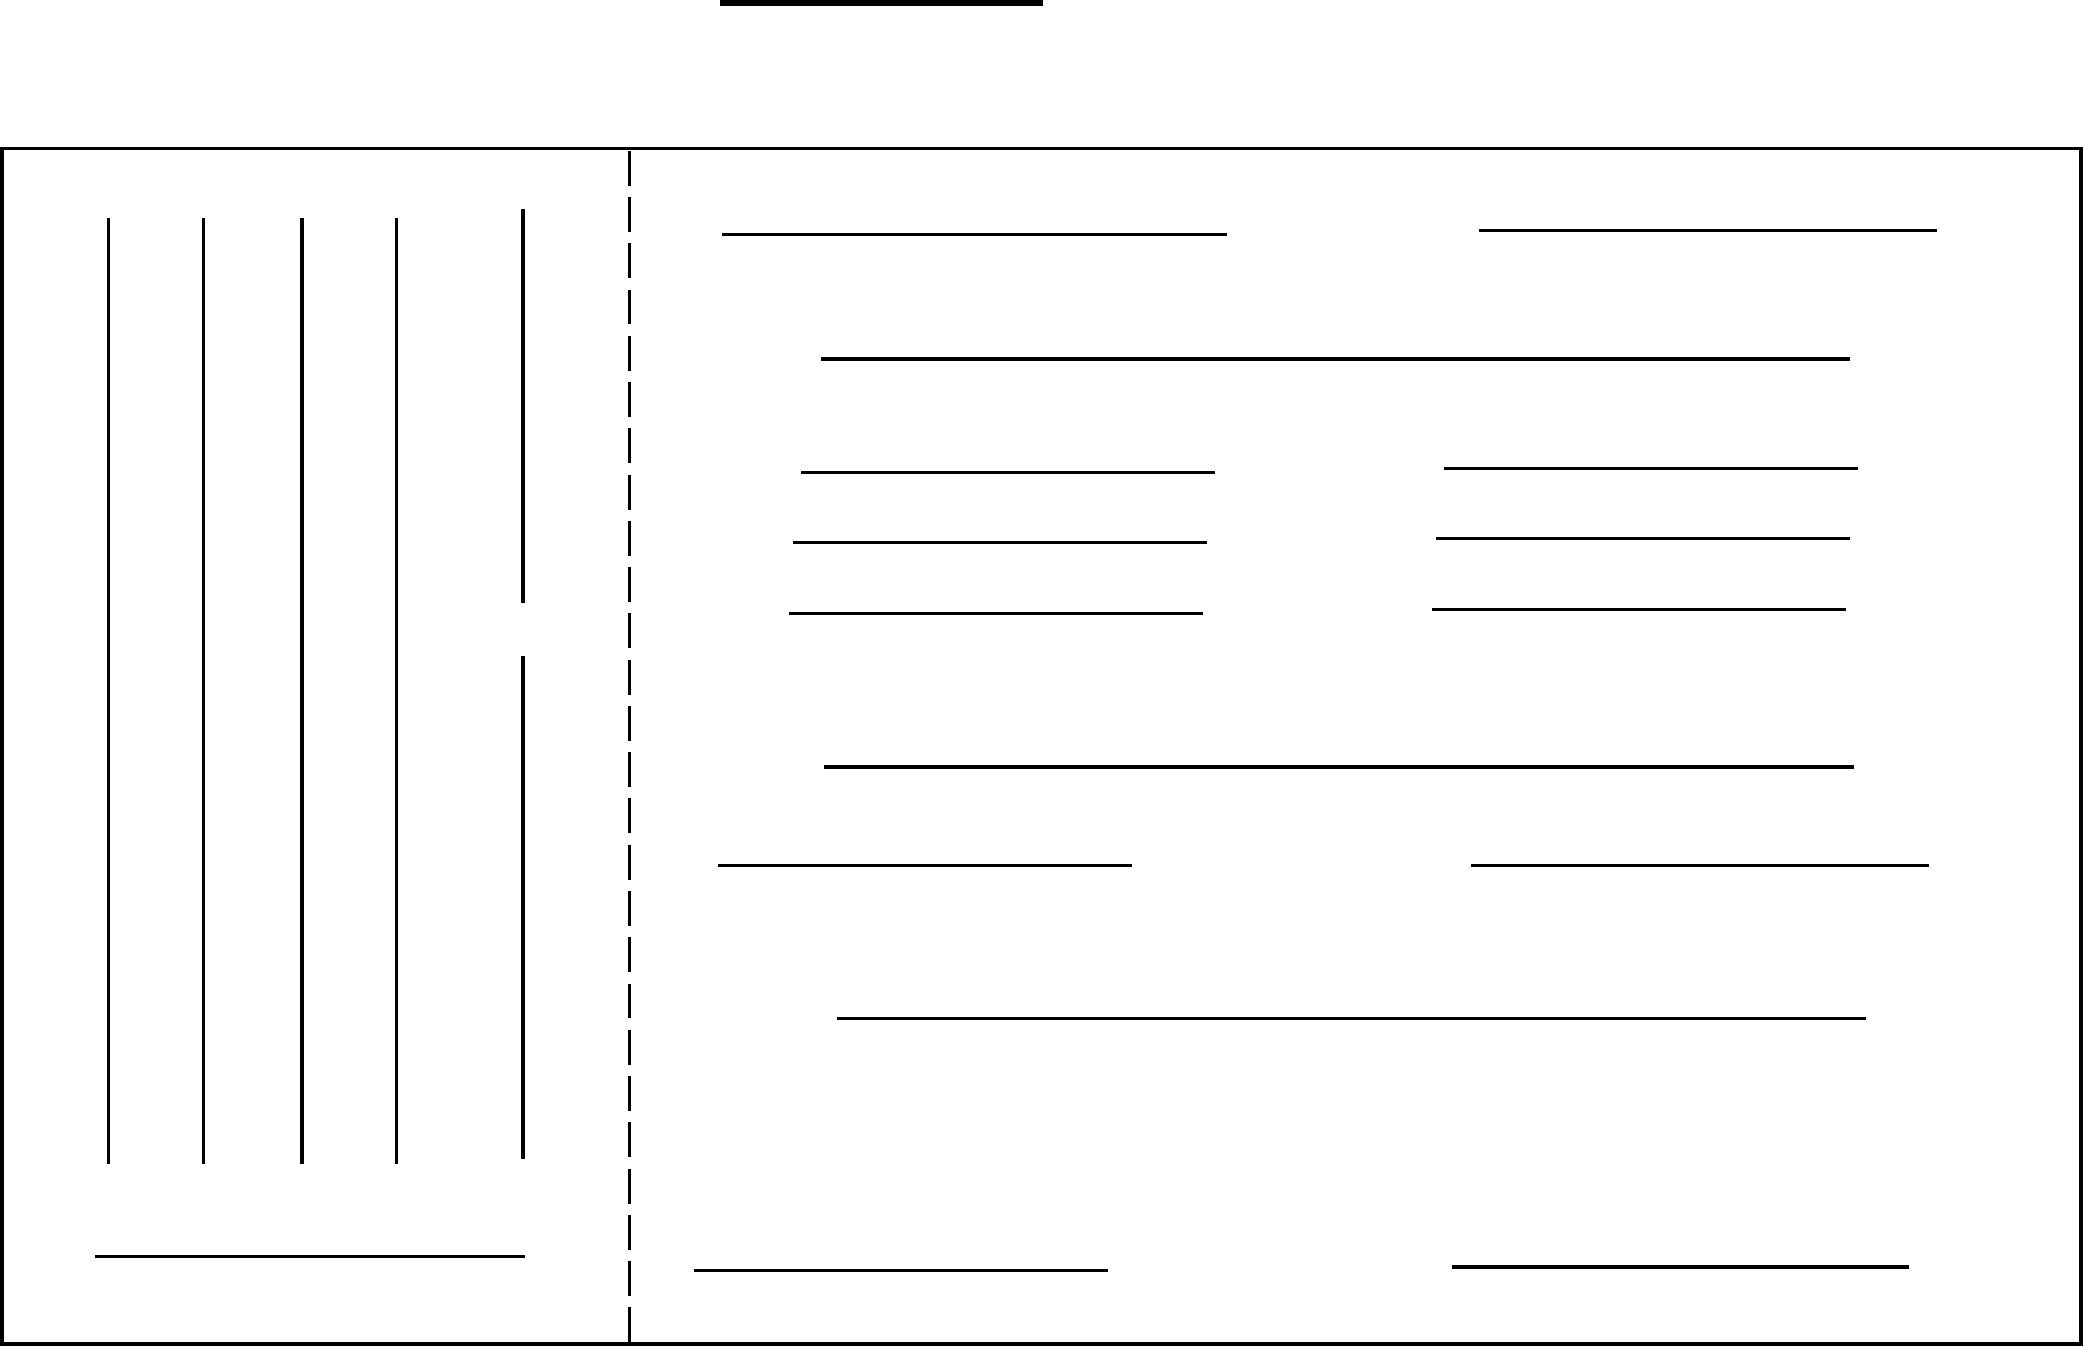 005 Outstanding Free Raffle Ticket Template Example  Word 10 Per Page For Mac DownloadFull